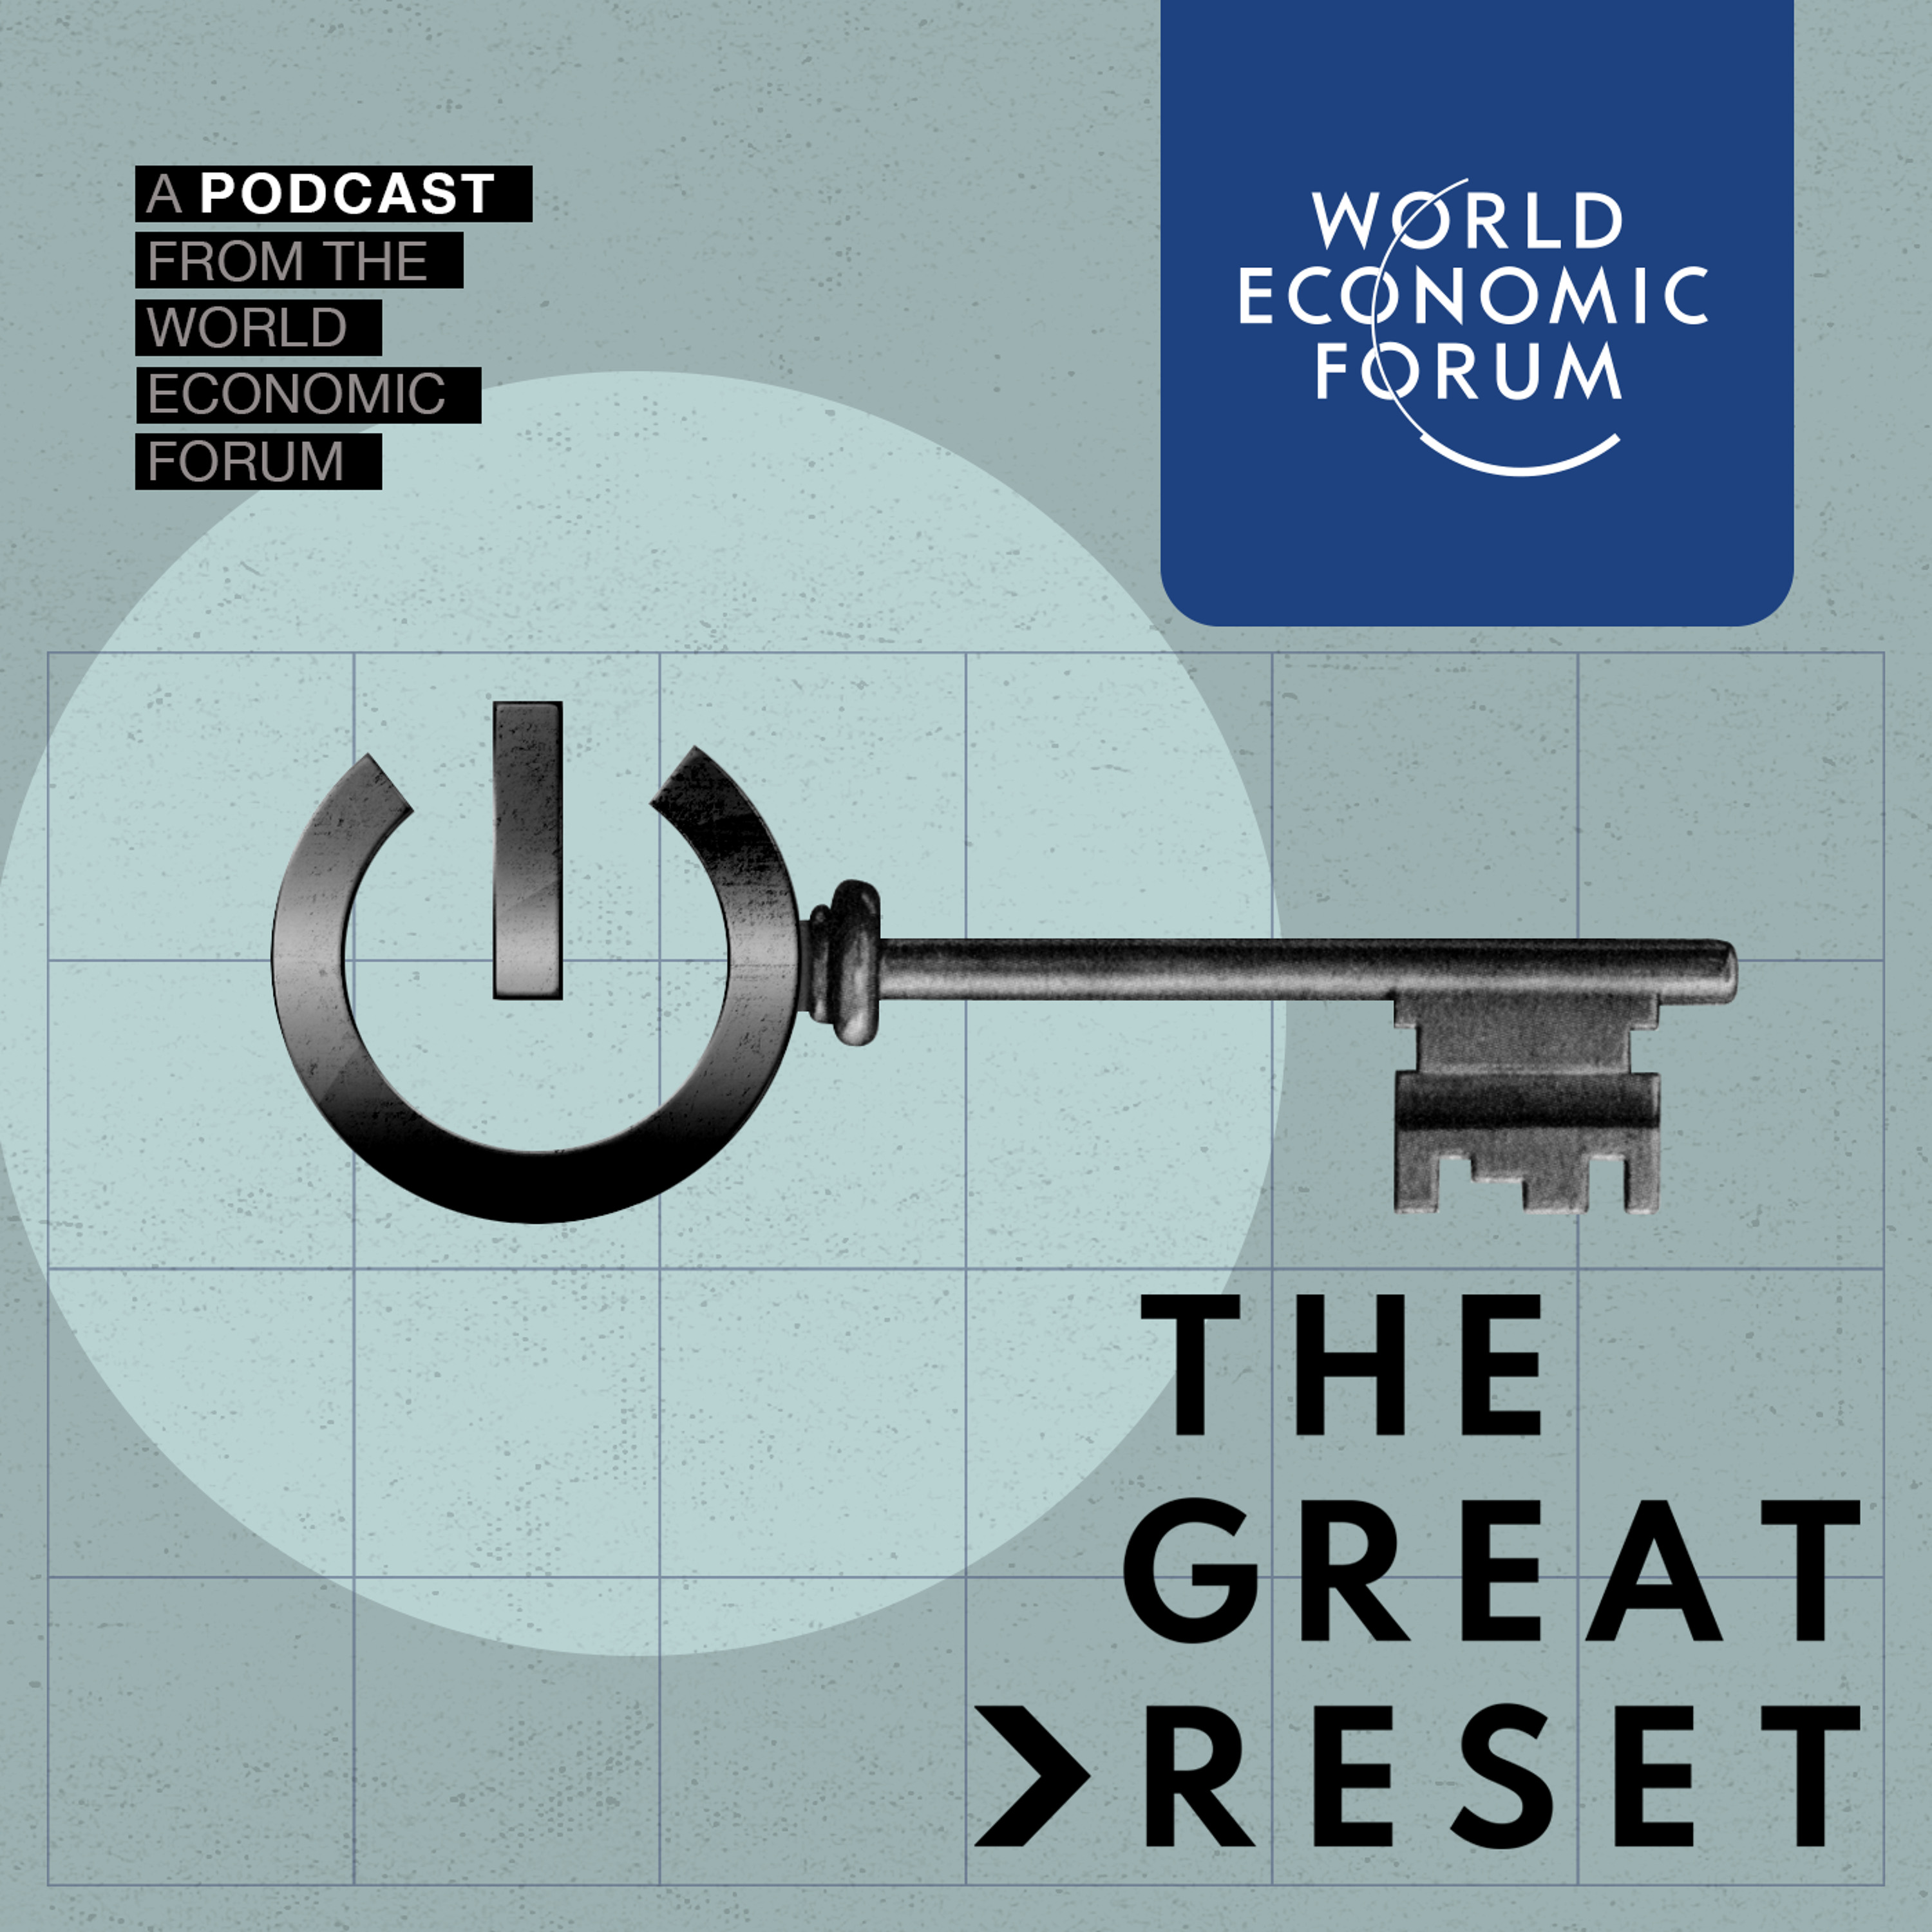 The Great Reset: Resetting the World